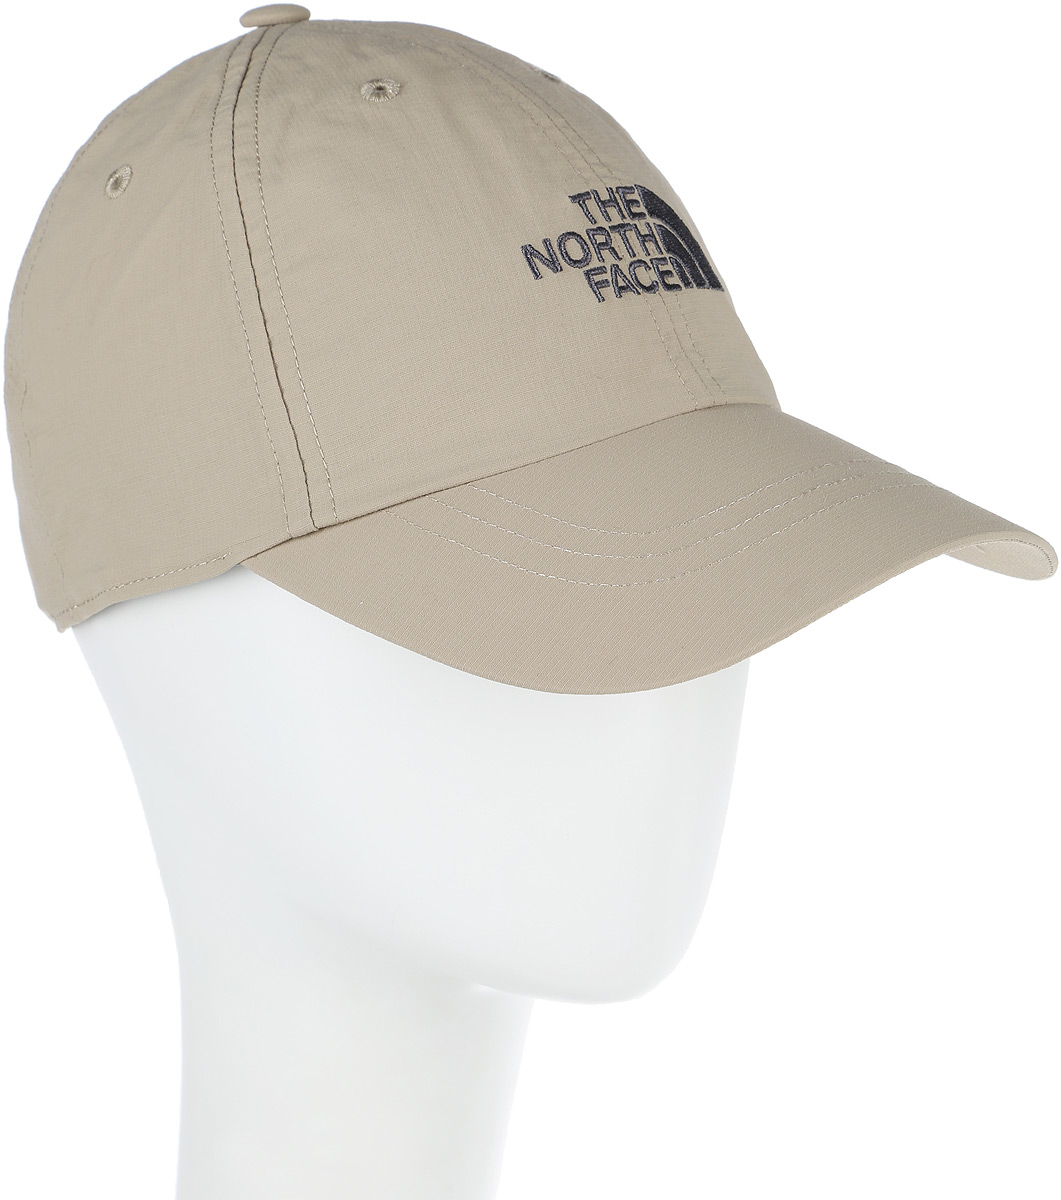 Бейсболка The North Face Horizon Hat, цвет: темно-бежевый. T0CF7W0SS. Размер S/M (56/57) the north face w horizon valley convertibl